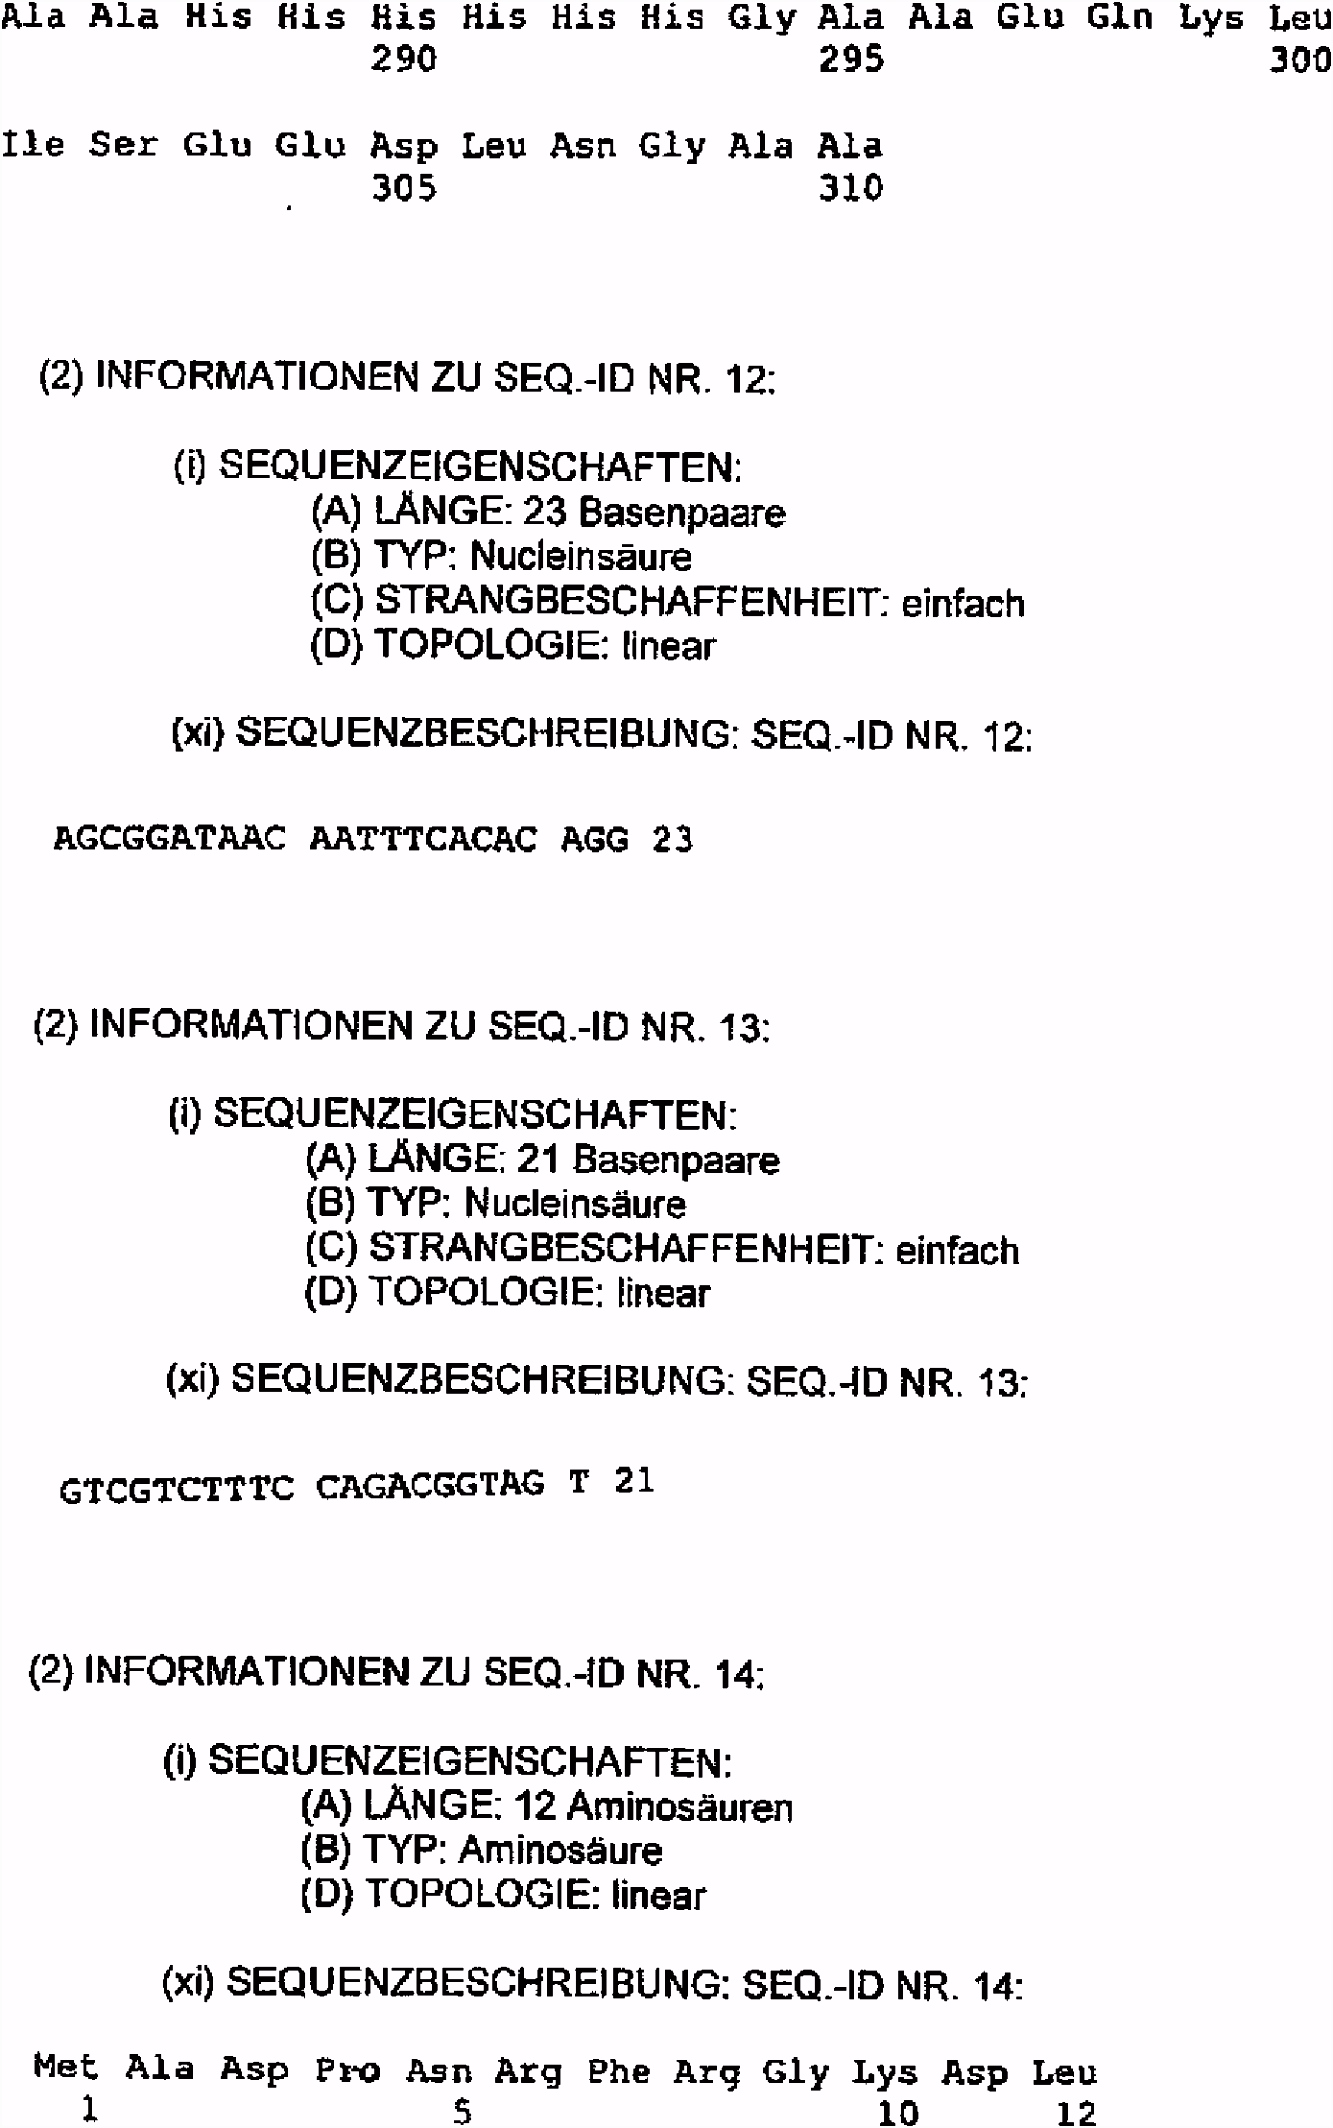 Volumenberechnung Excel Vorlage De T3 Anti Apo 2 Antibody Google Patents K0cw93mmq3 M2uks2tdd4